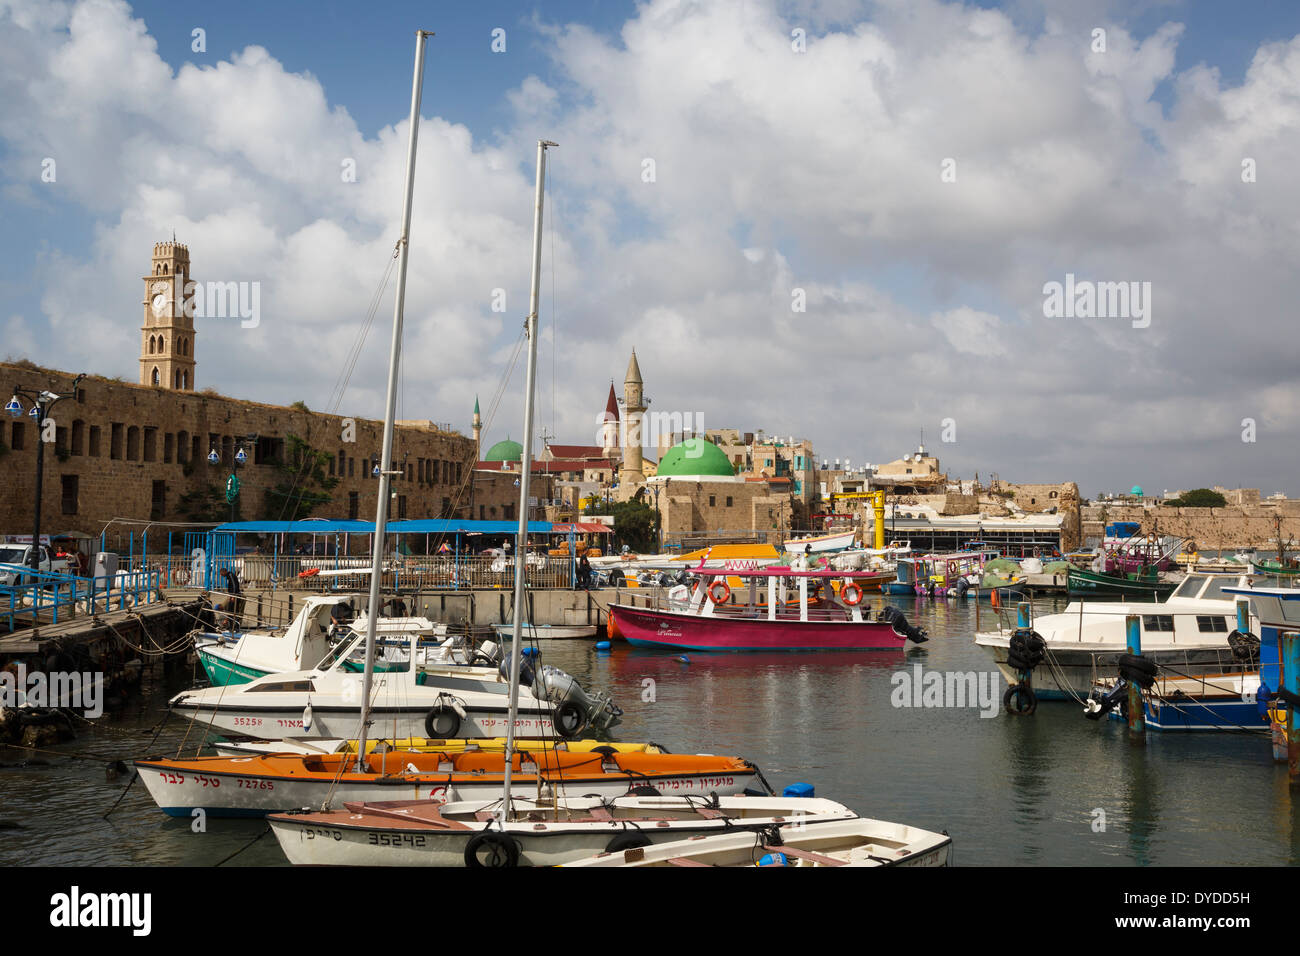 The port at the old city of Akko (Acre), Israel. Stock Photo